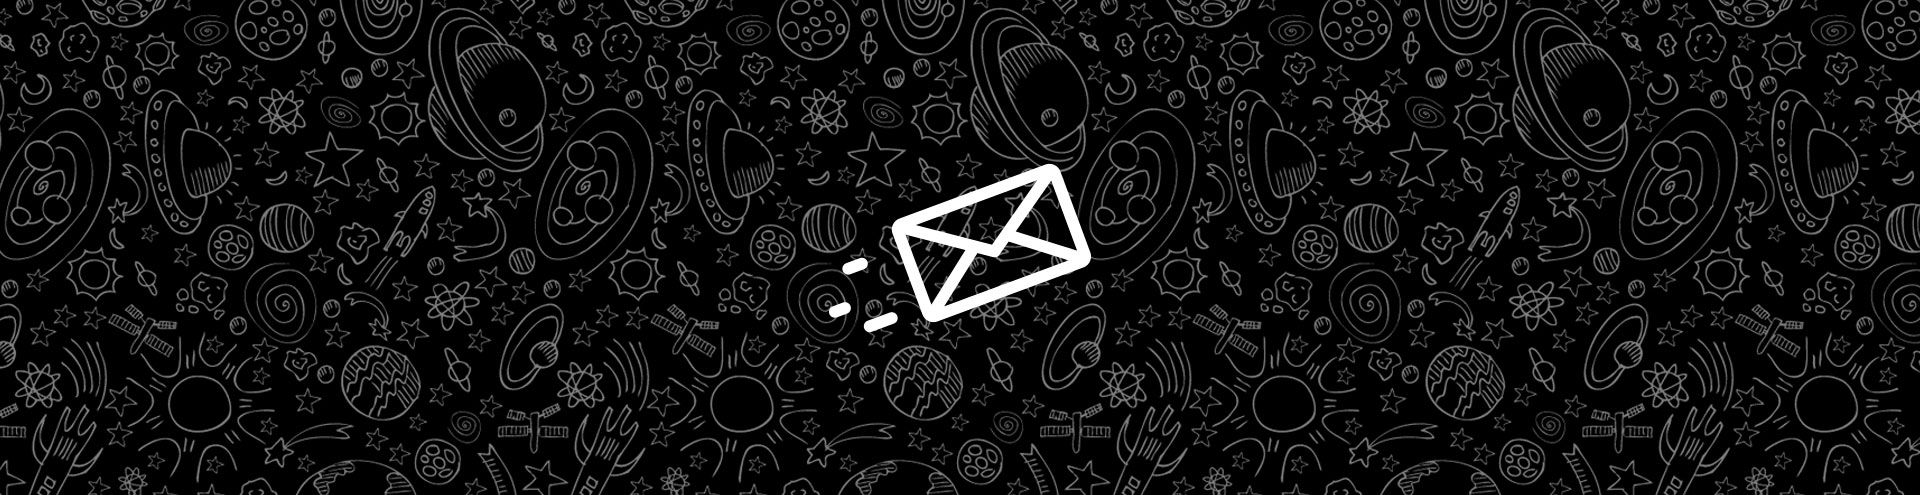 Email Sending Using MeteorJS: Implementation Process and Email Templates